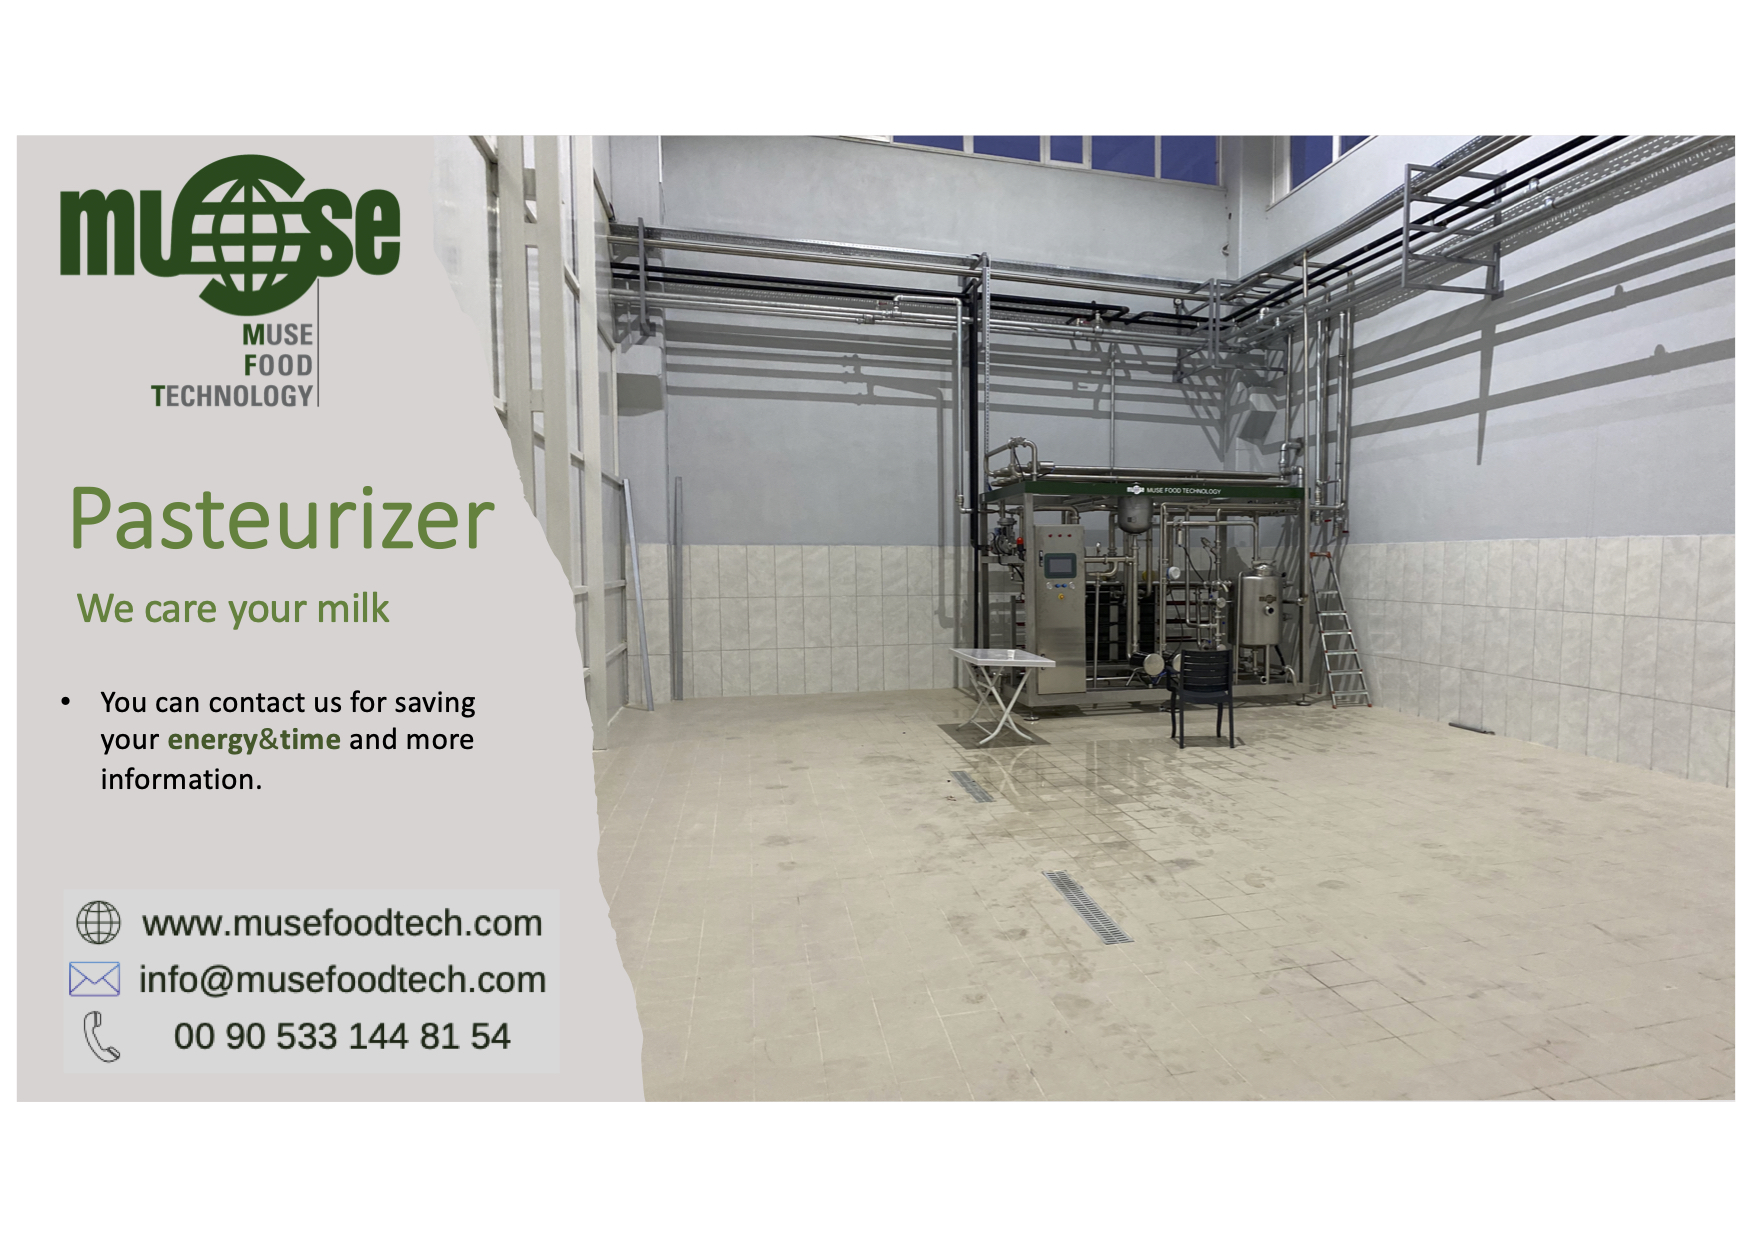 Milk Pasteurizer Muse Food Technology